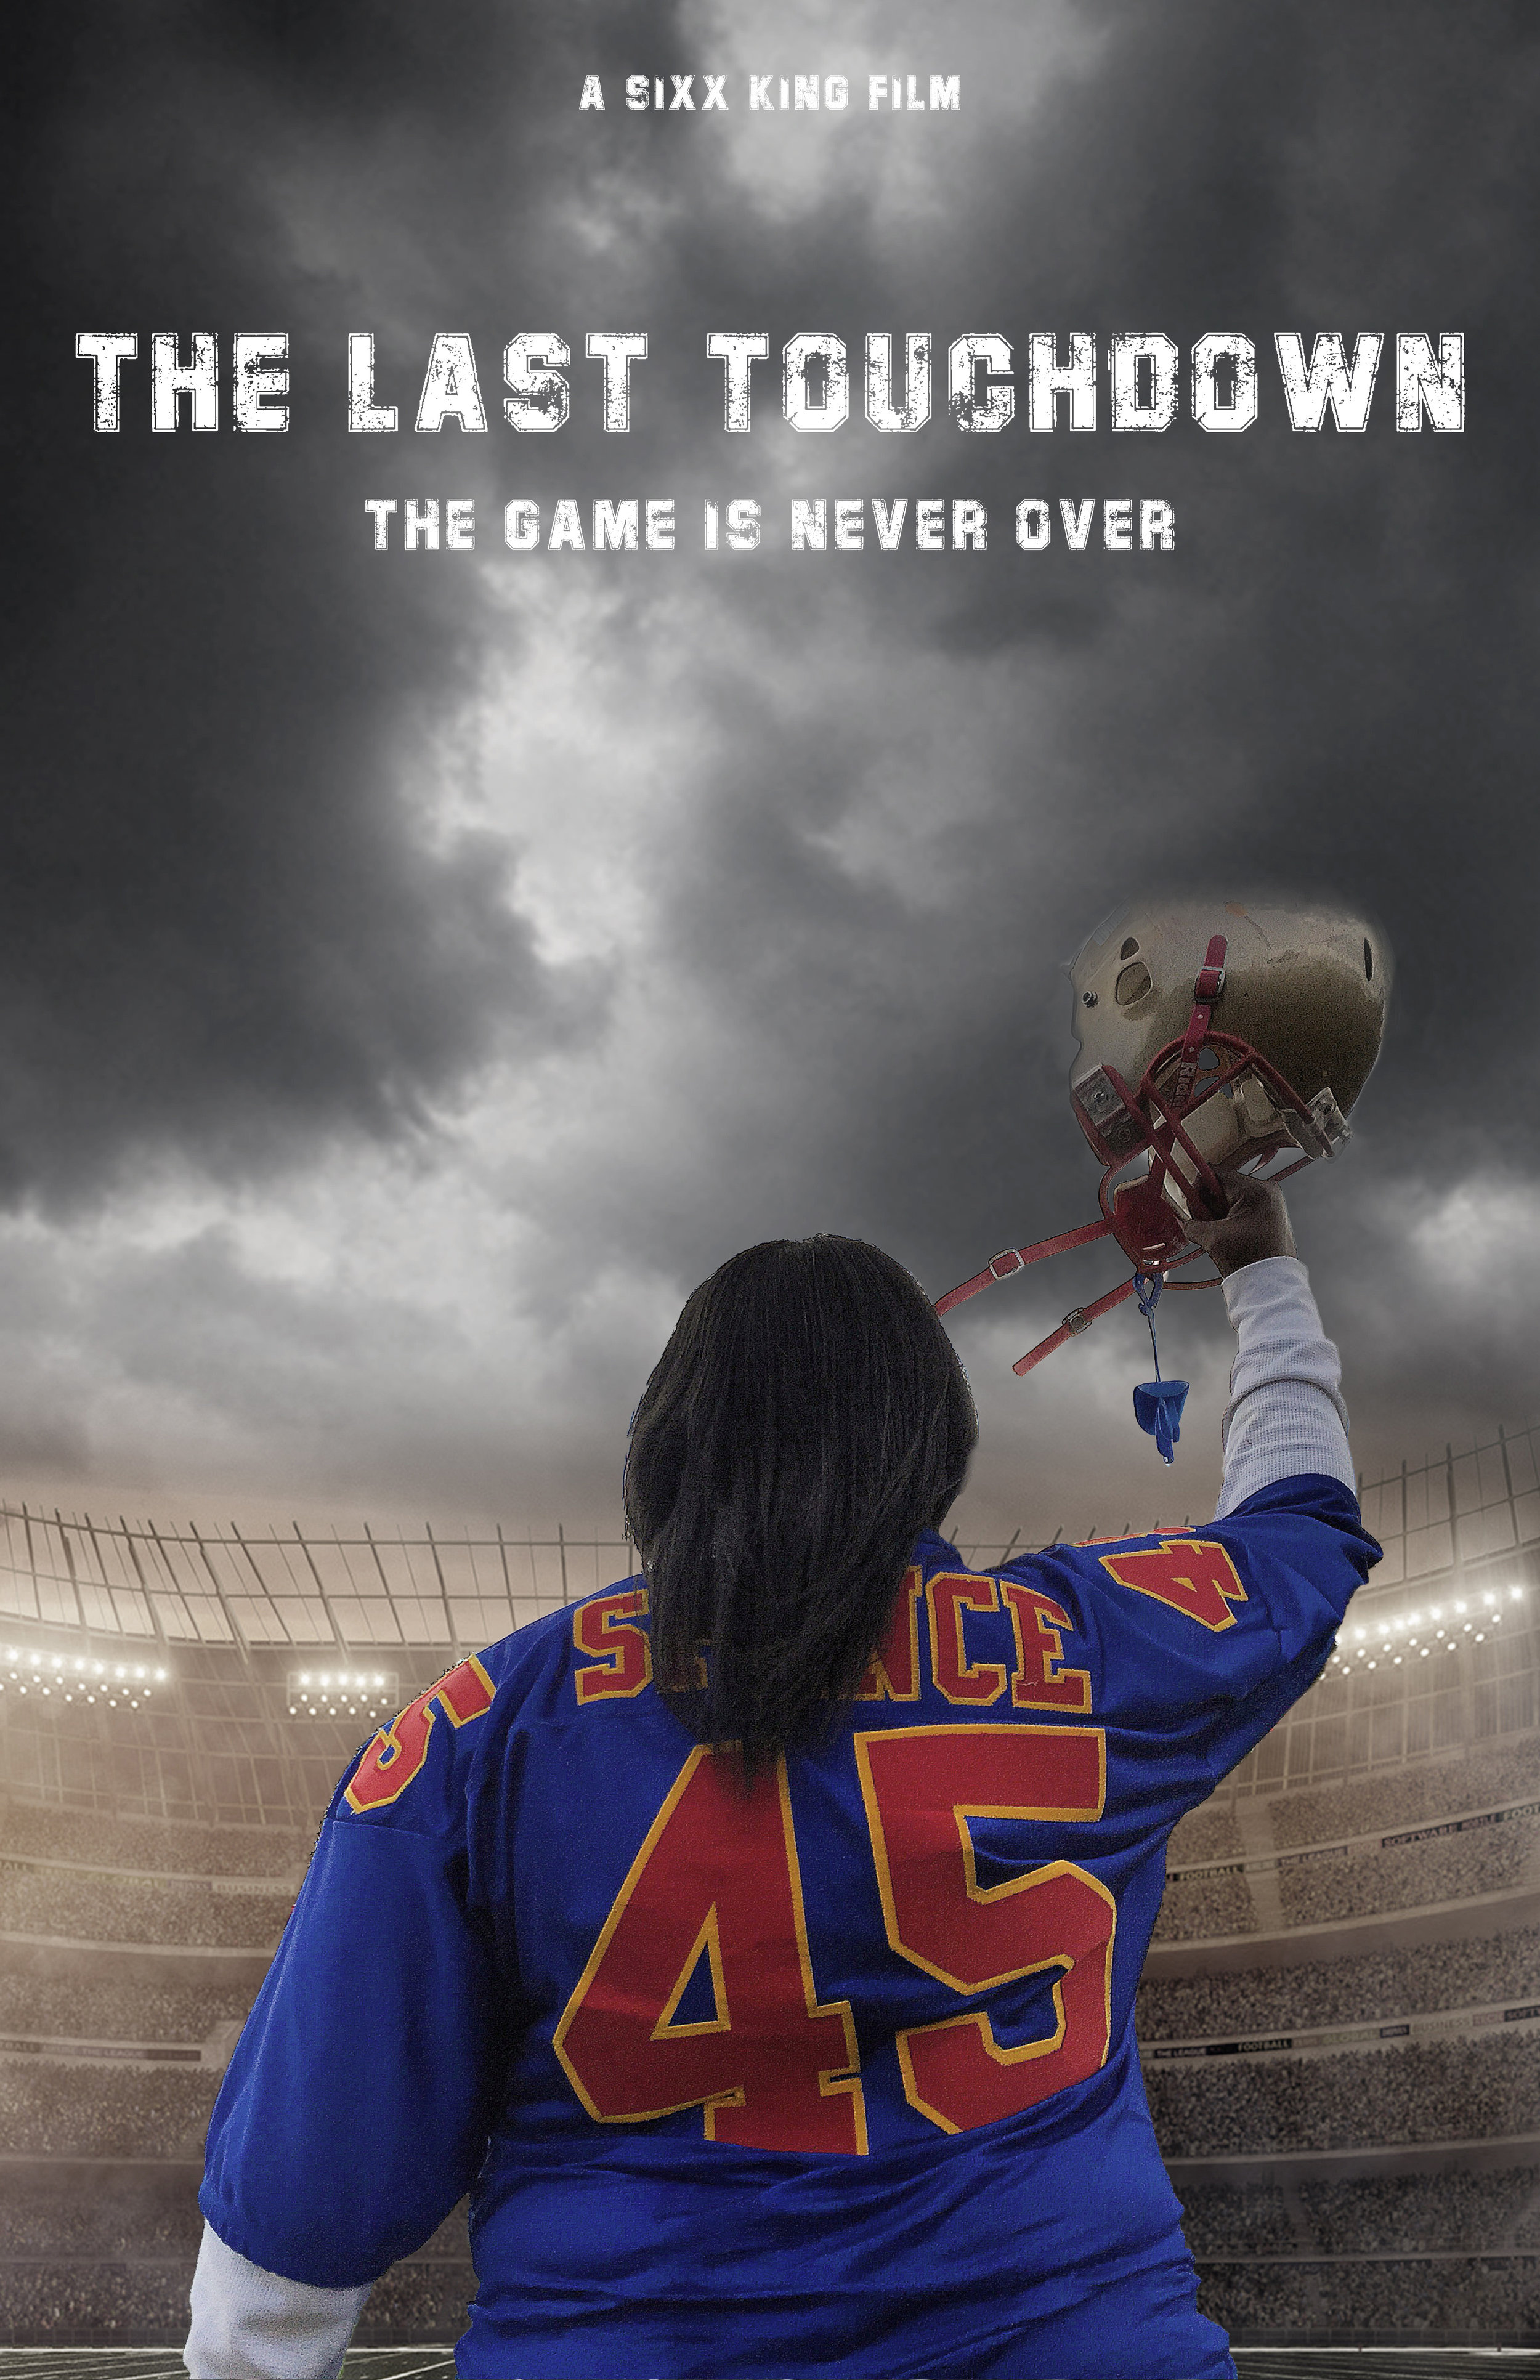 THE LAST TOUCHDOWN - THE GAME IS NEVER OVER